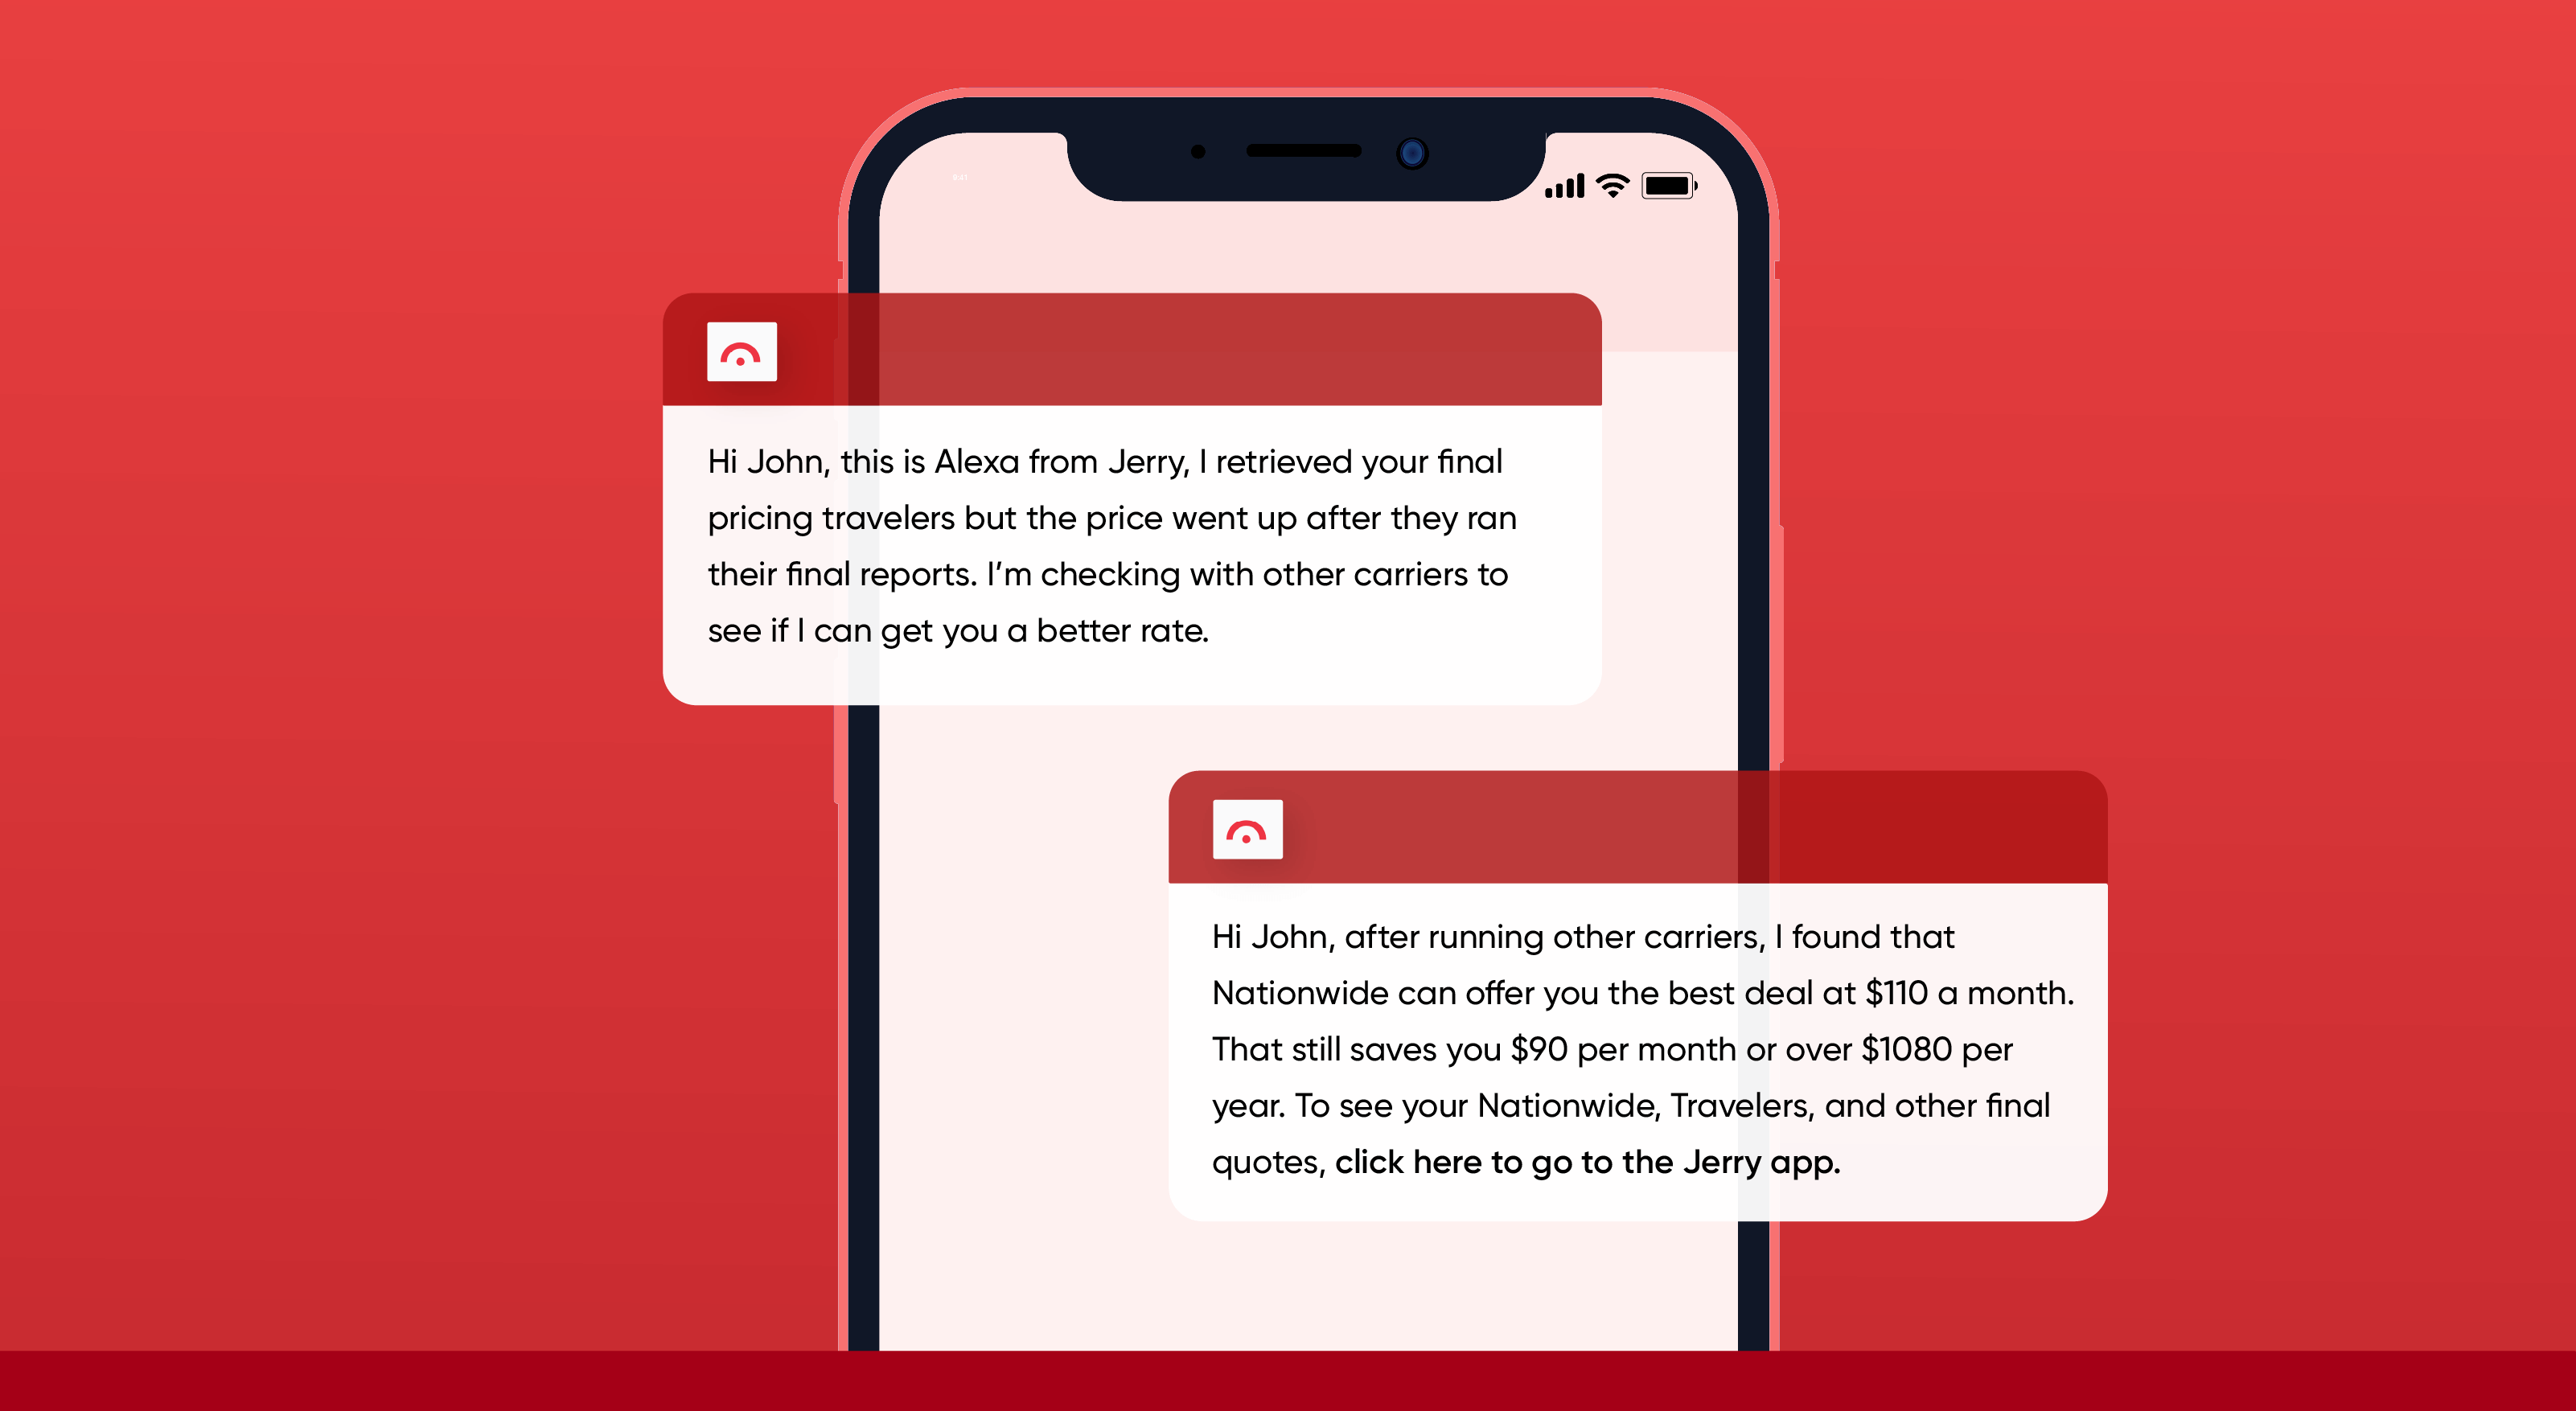 App monetization tips - use push notifications to communicate with users